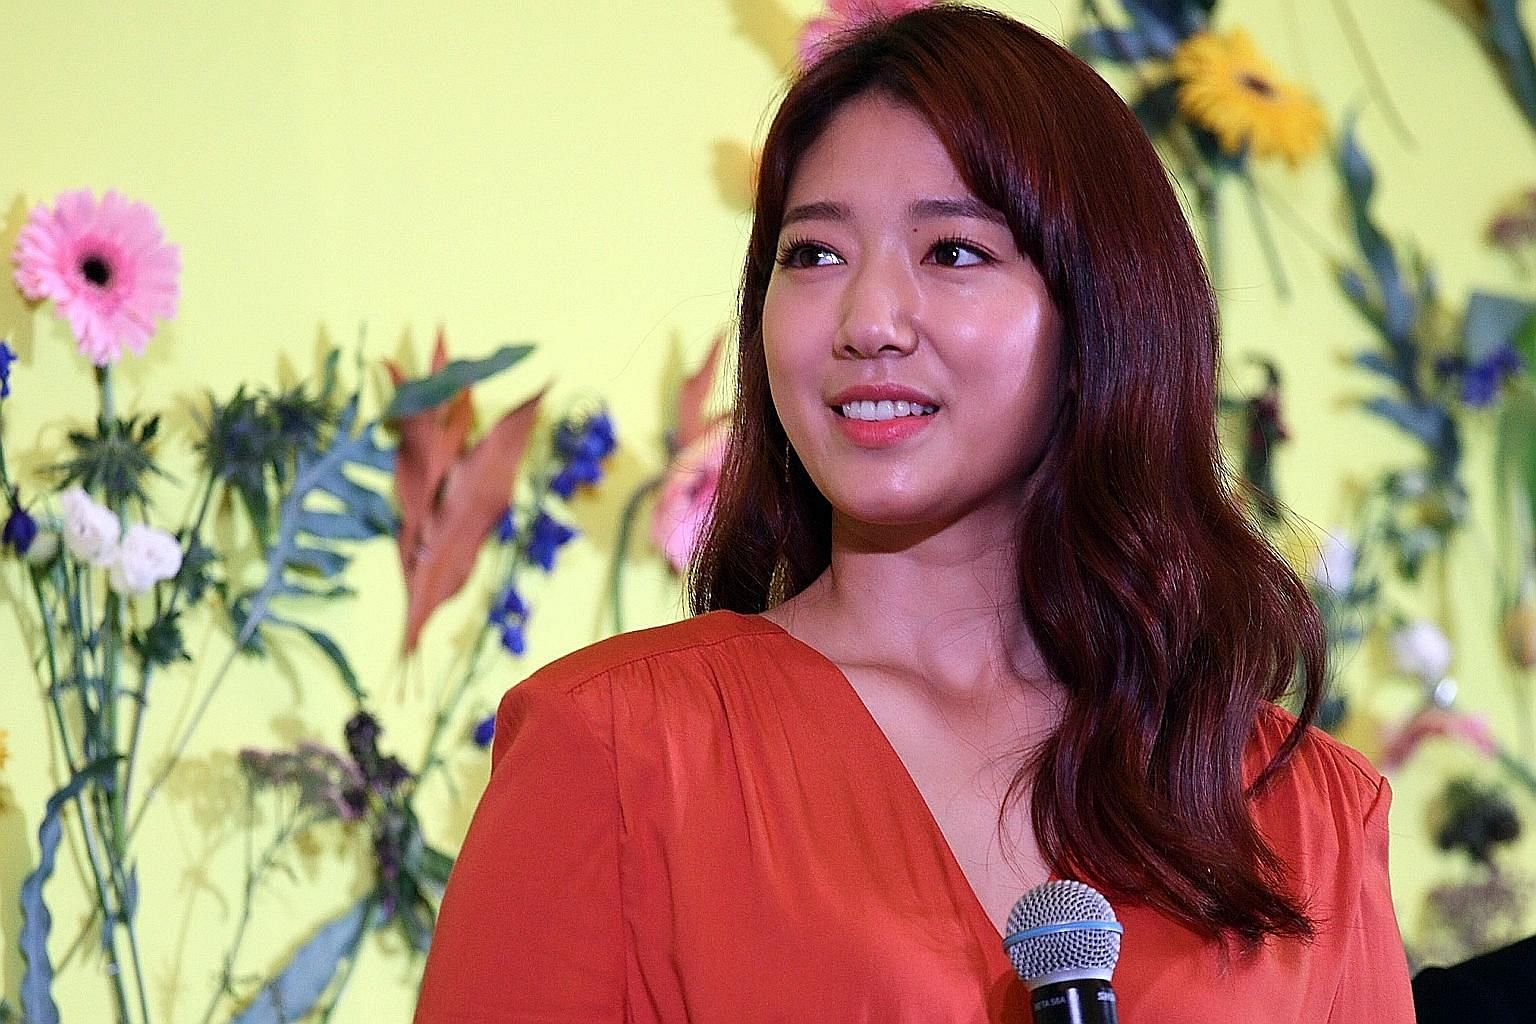 South Korean star Park Shin Hye at a press event for South Korean beauty label Mamonde yesterday.